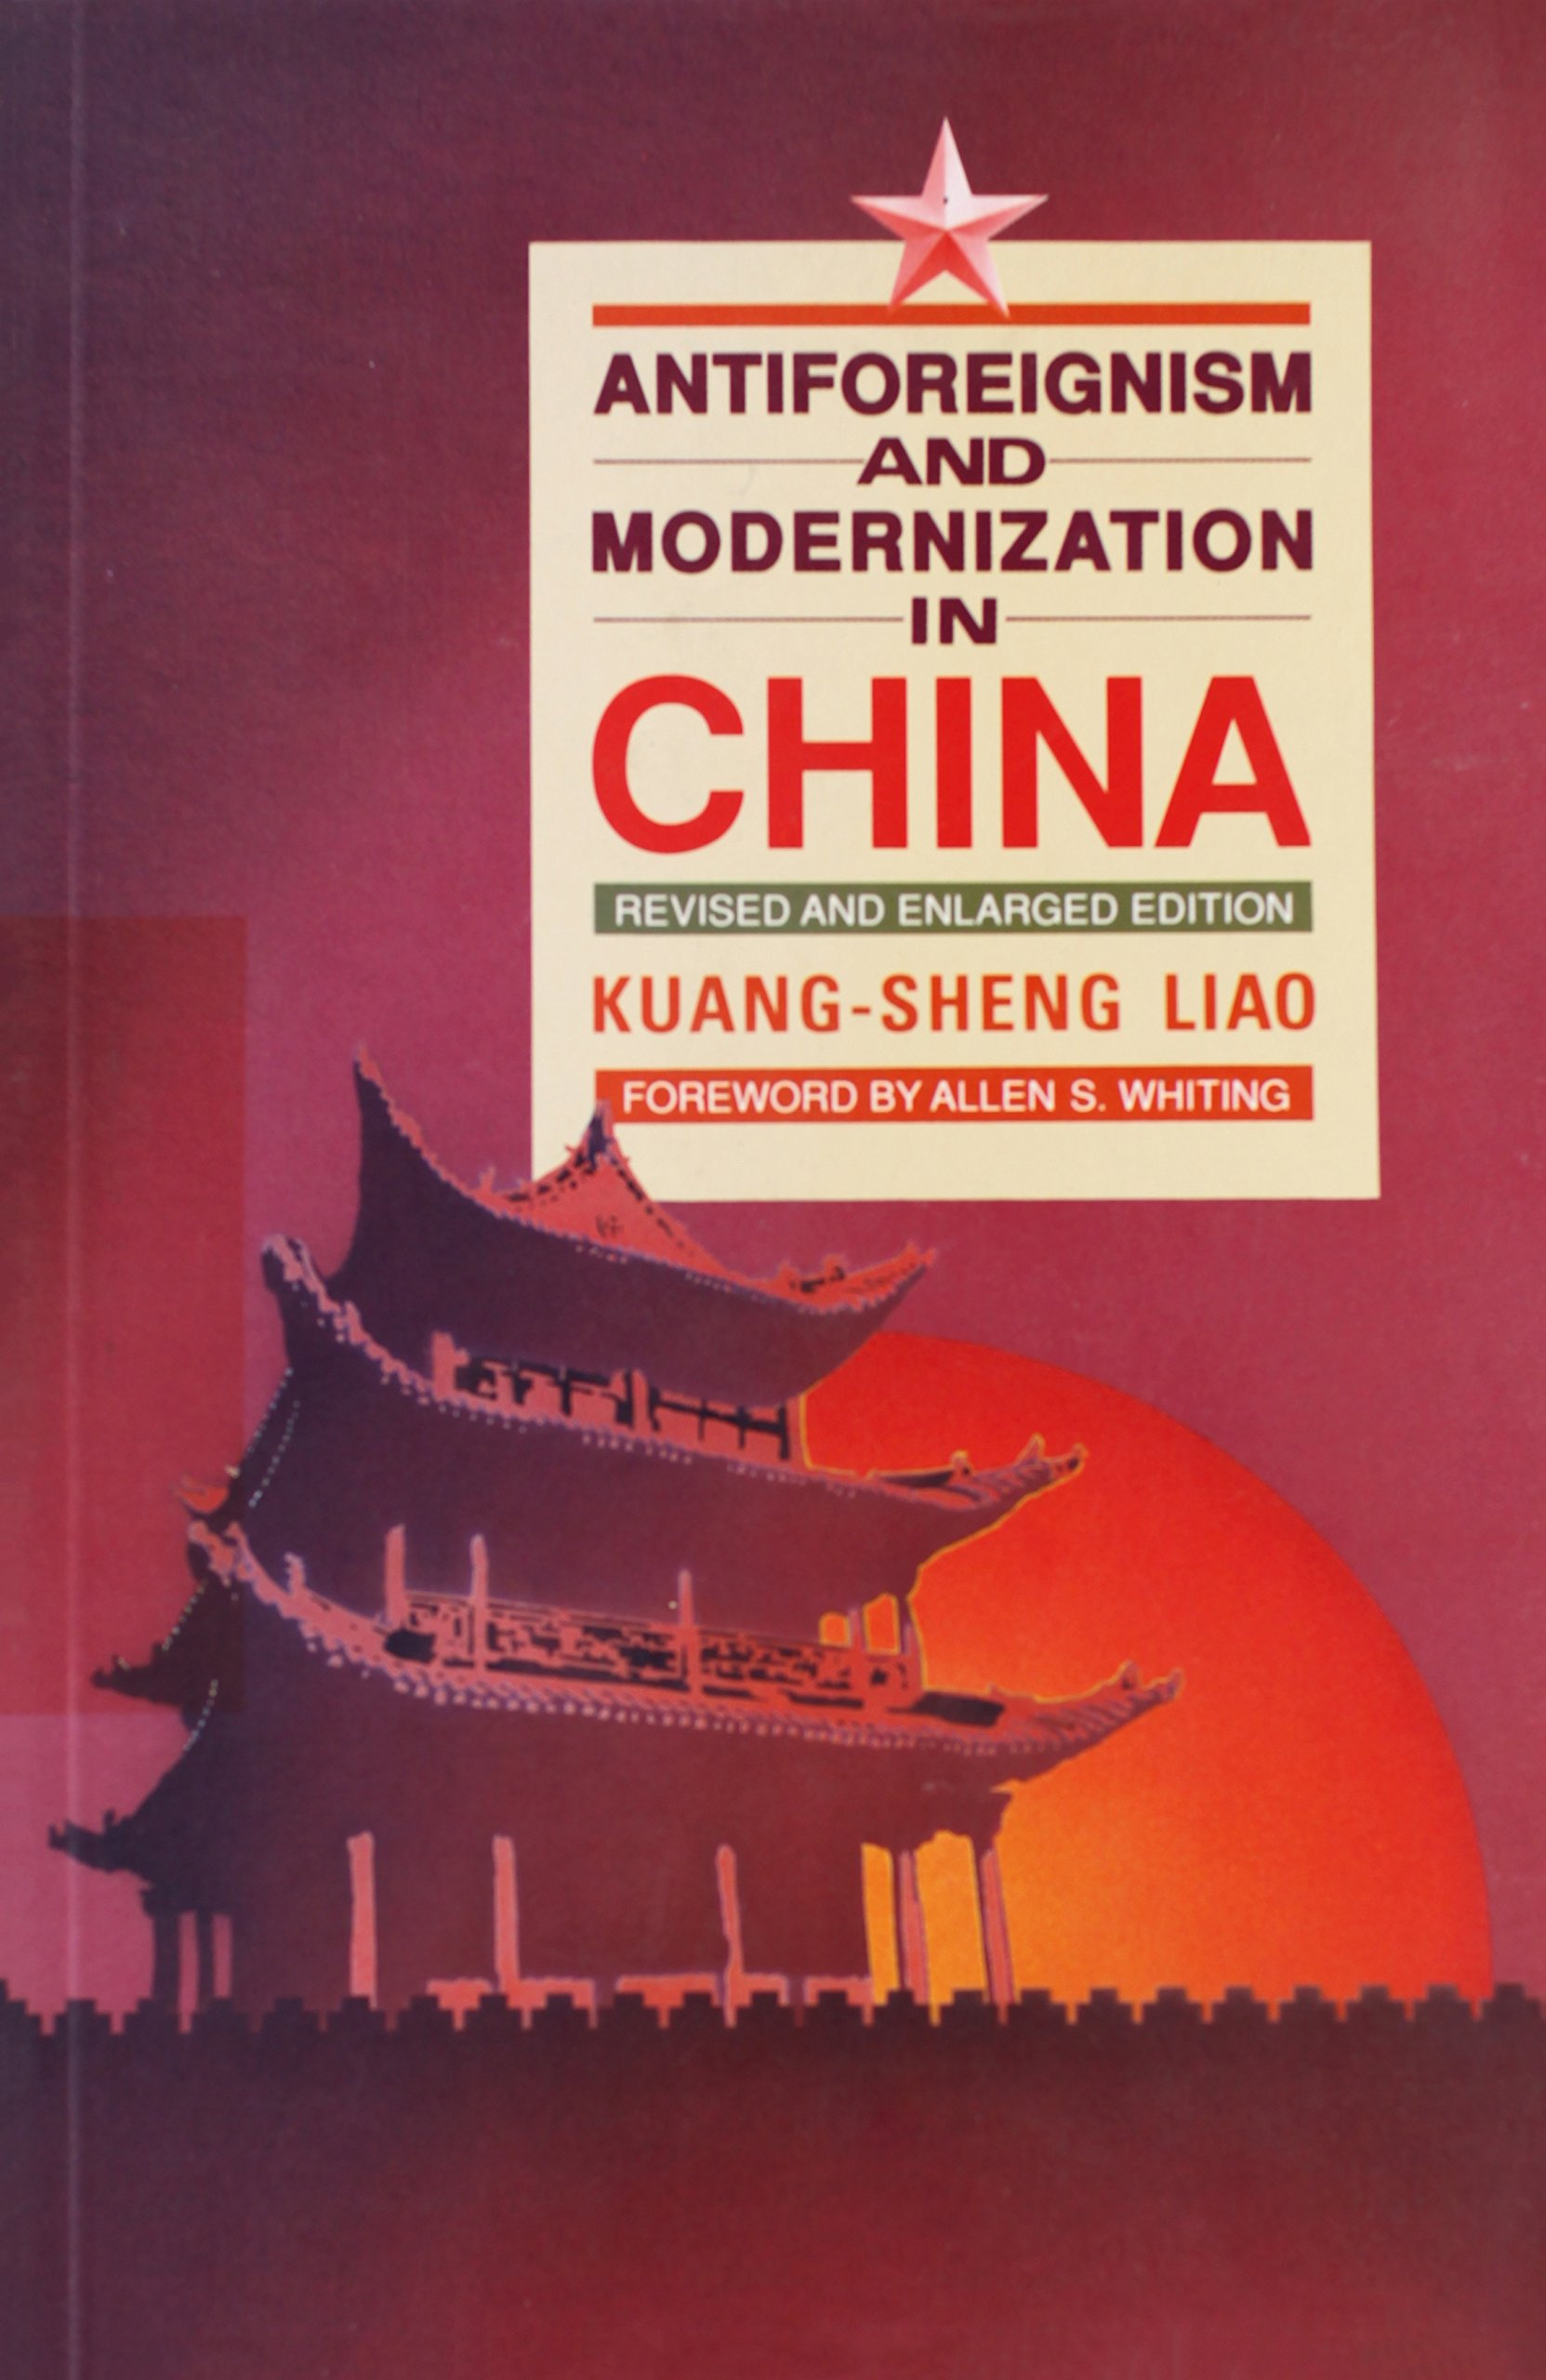 Antiforeignism and Modernization in China